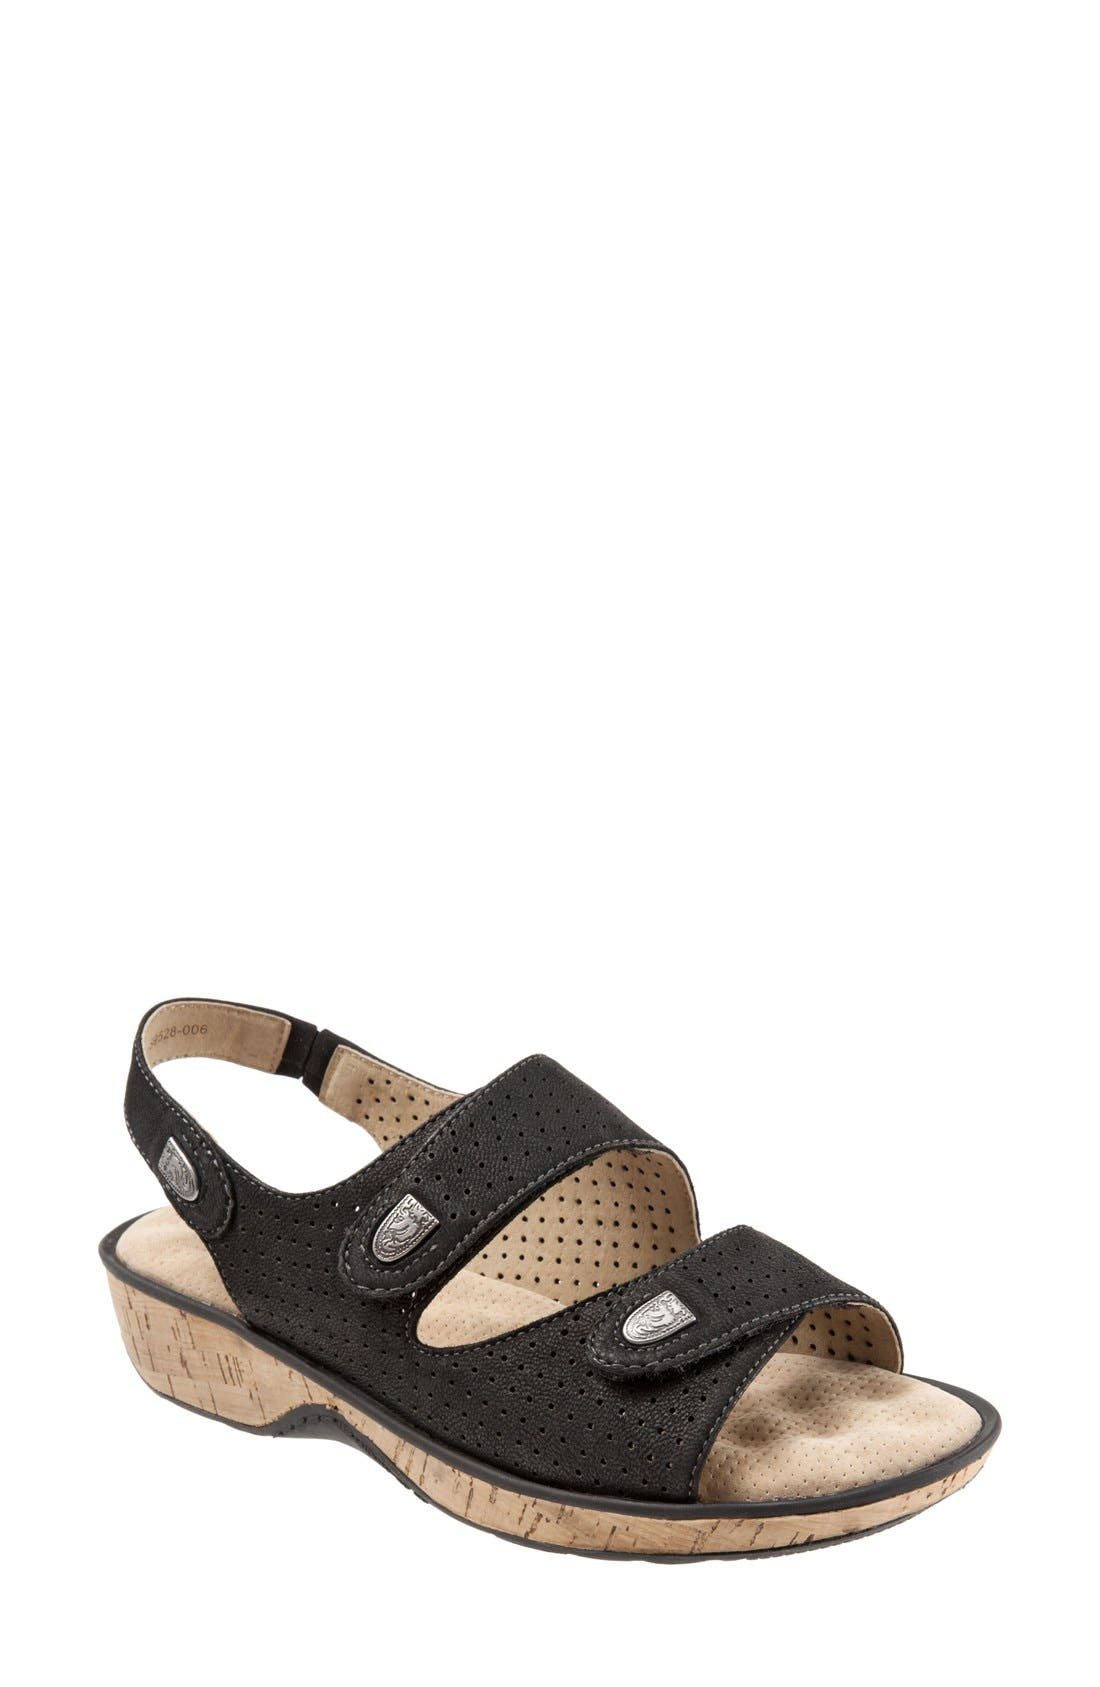 'Bolivia' Sandal,                         Main,                         color, 006